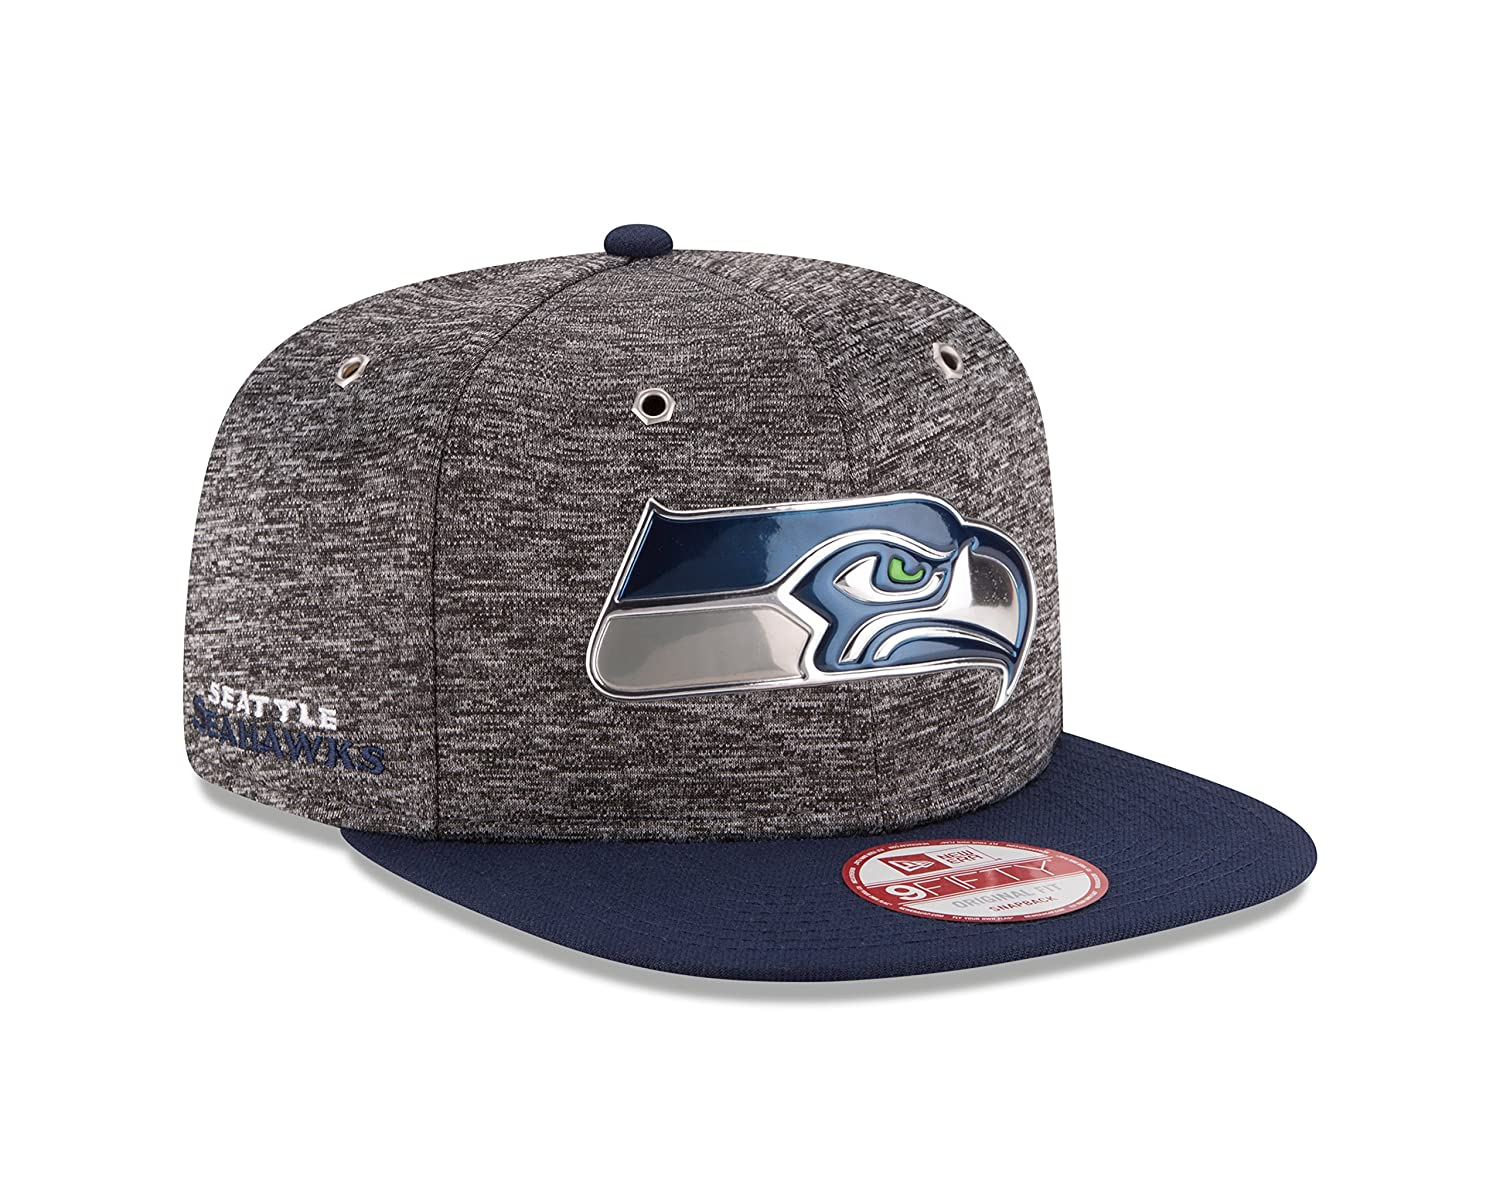 cae61af7f Amazon.com   New Era NFL Seattle Seahawks 2016 Draft 9Fifty Snapback ...